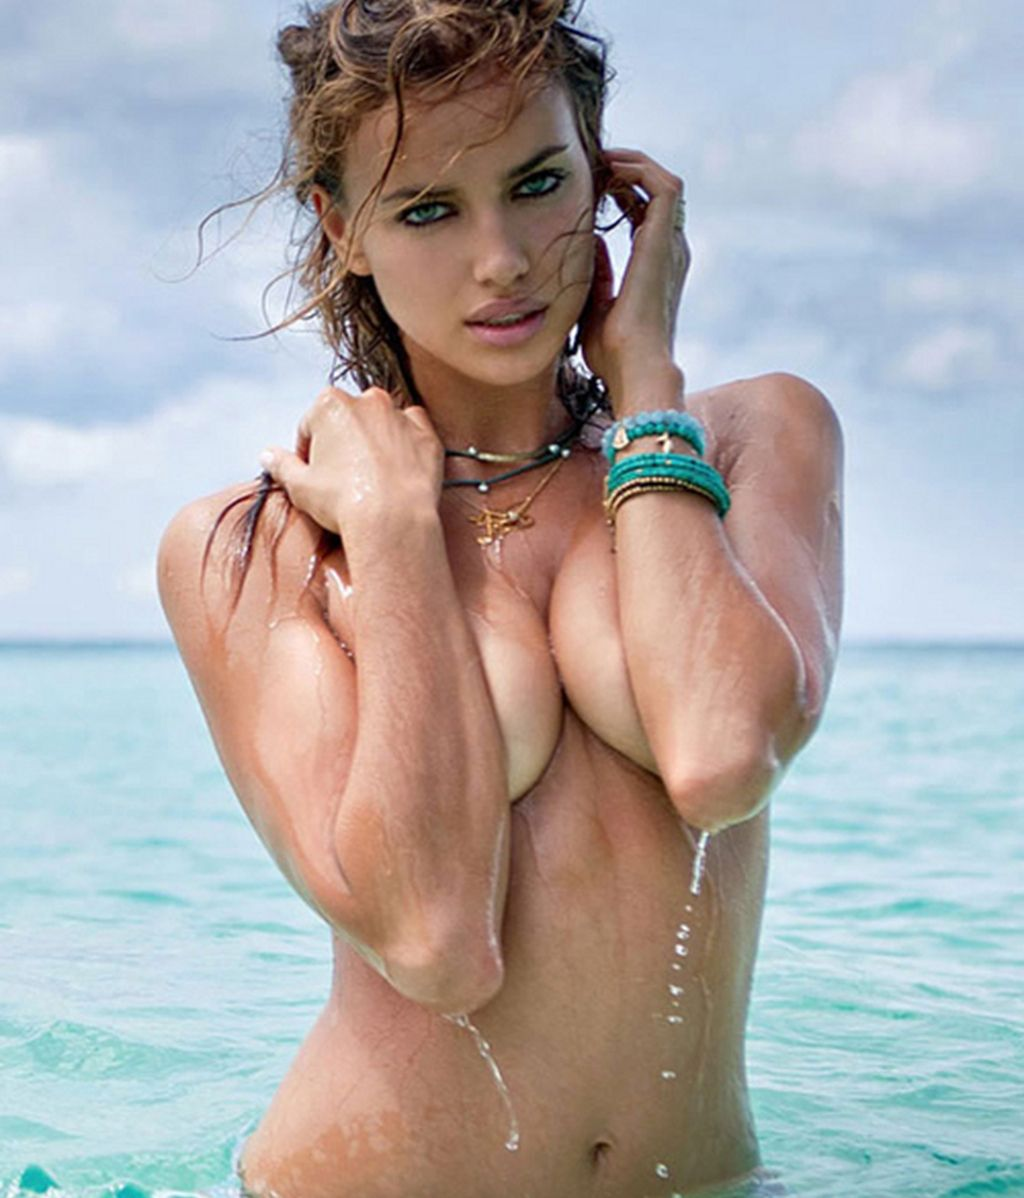 Sports Illustrated le quita el bikini a Irina Shayk, la novia de Cristiano Ronaldo